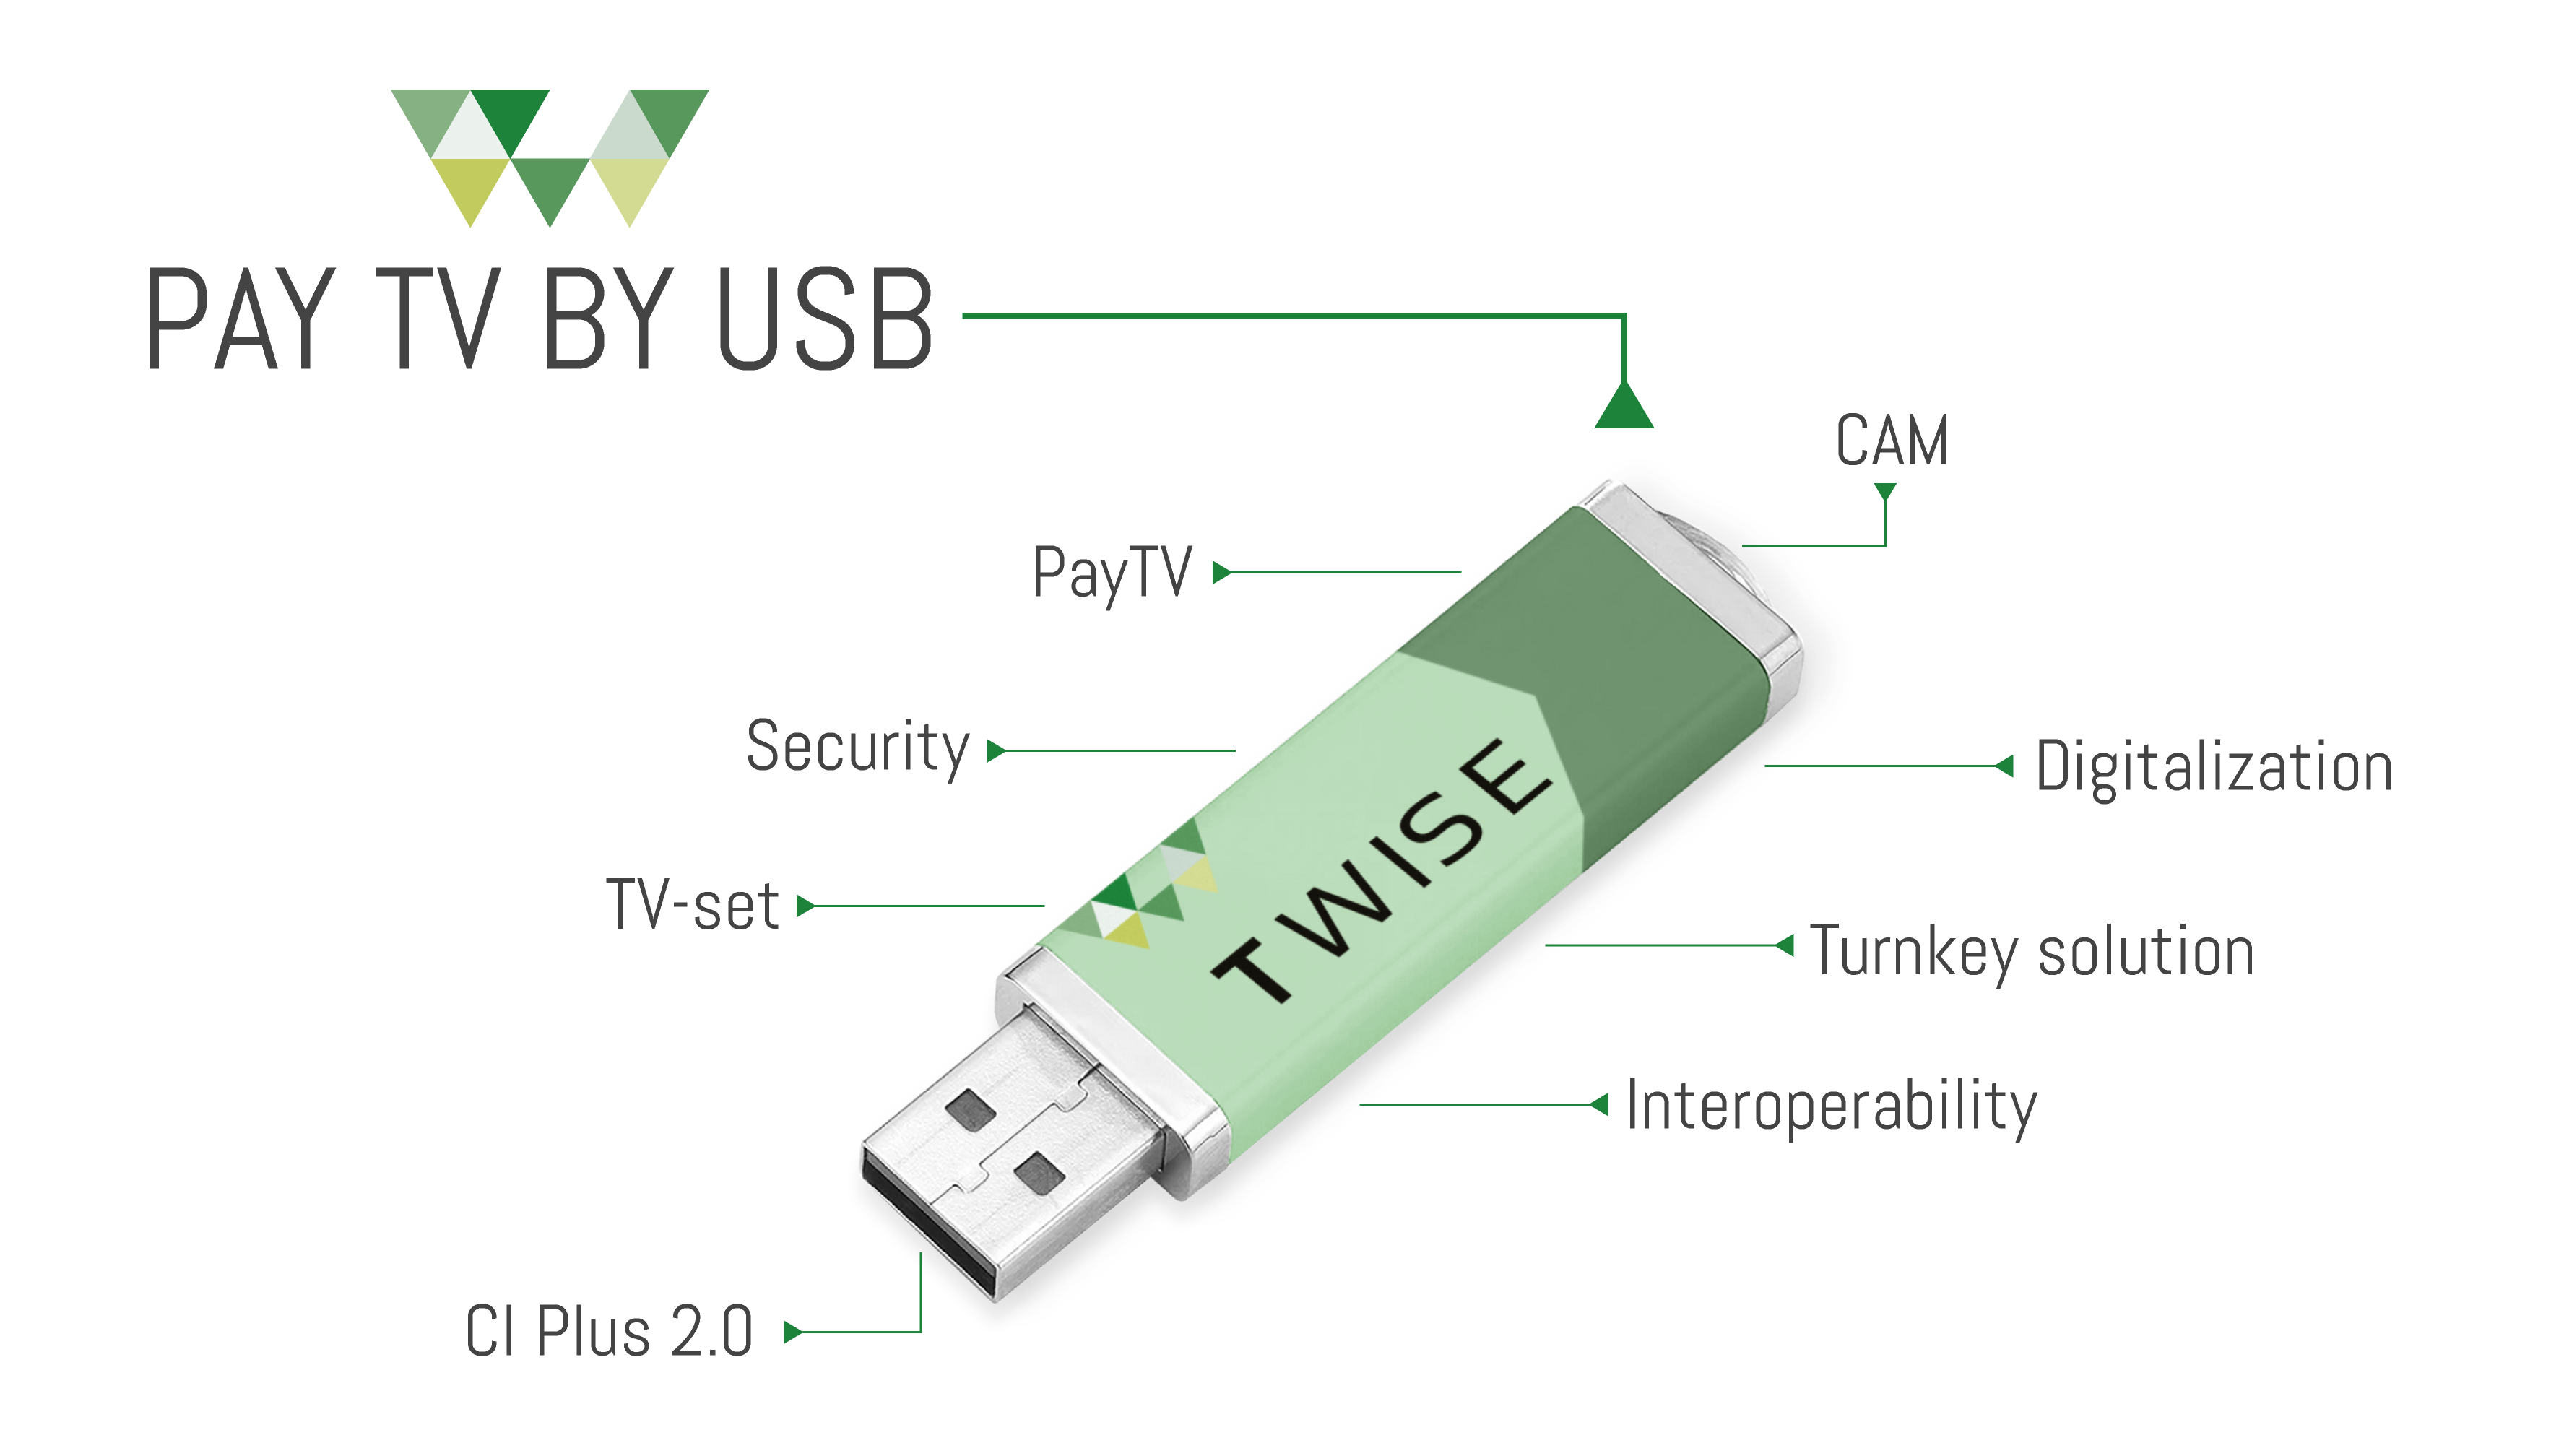 illustration of USB CAM by Twise